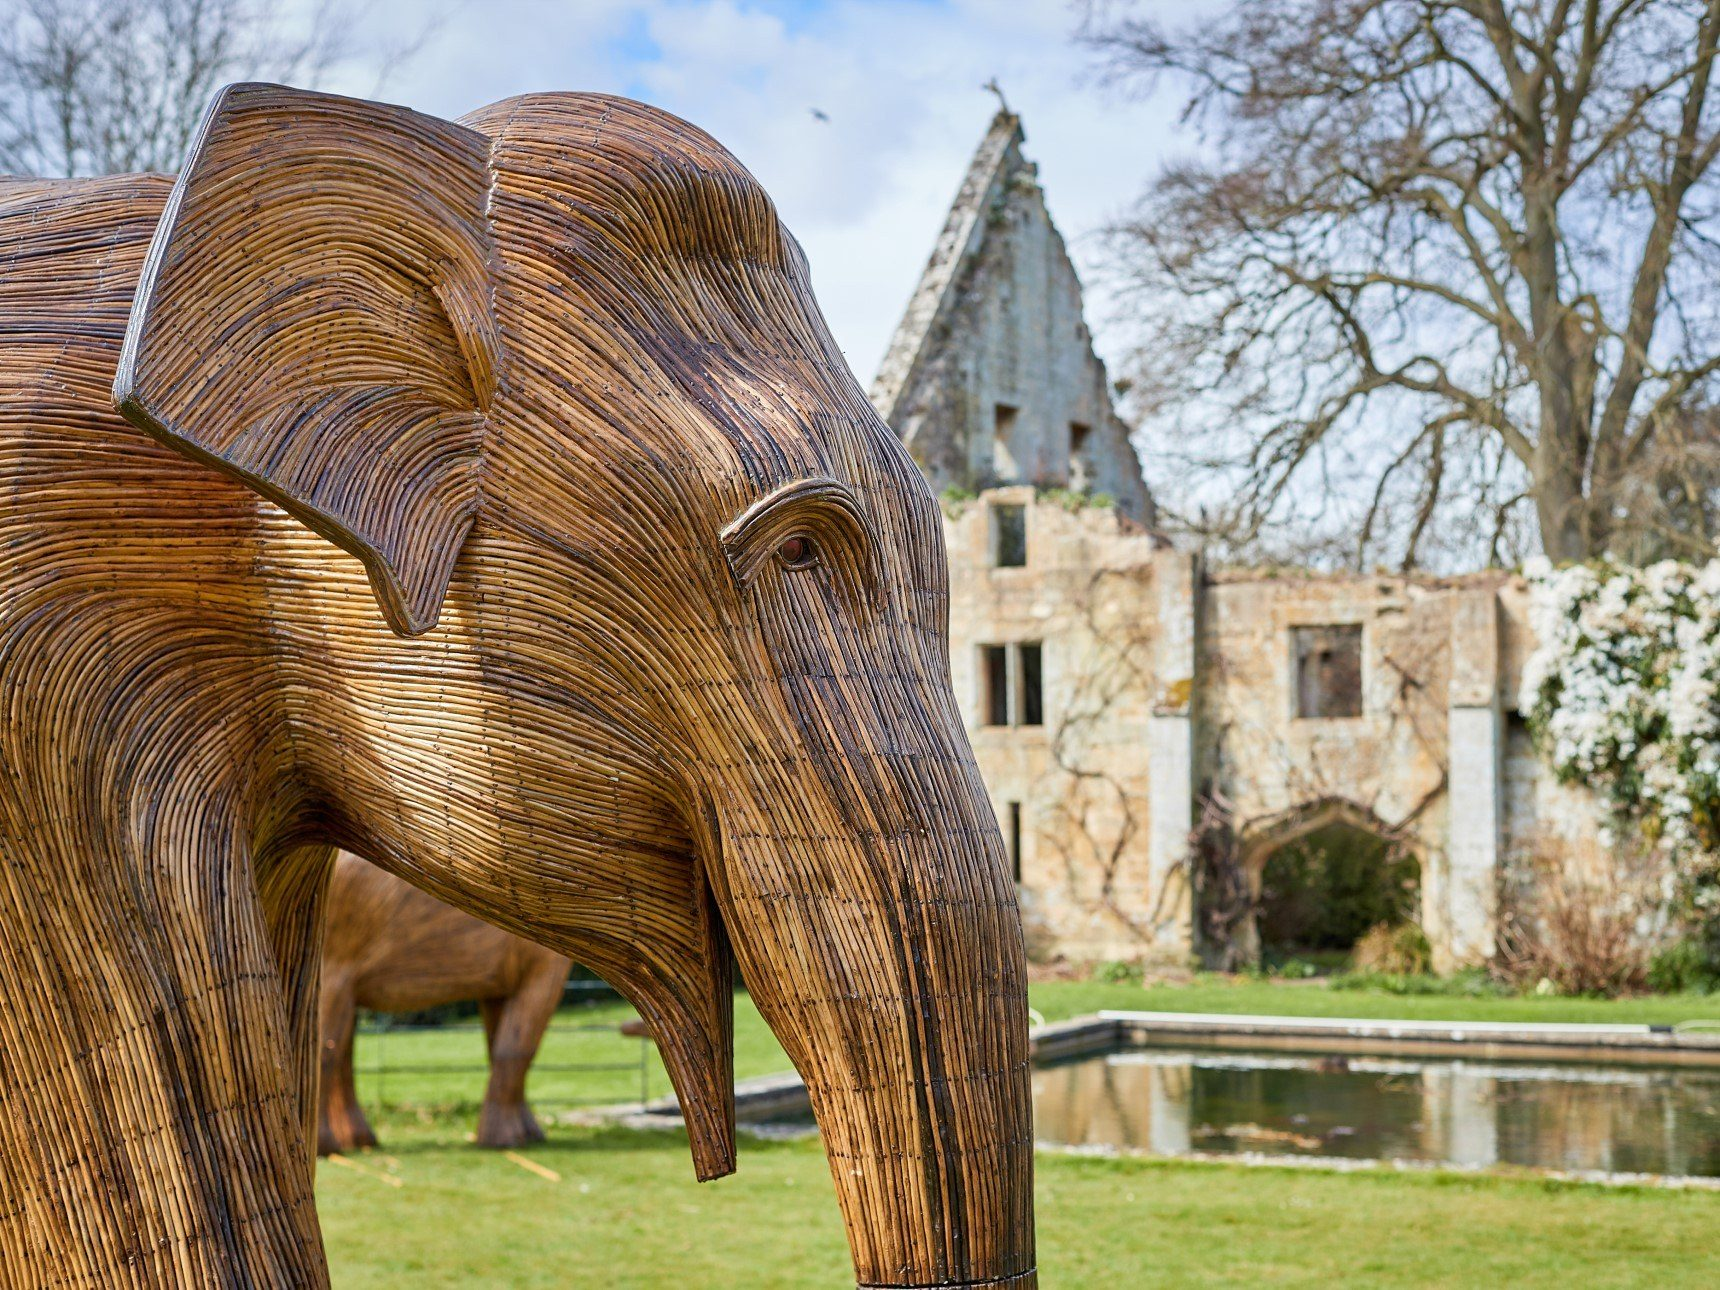 close up of elephant sculpture in front of Tithe Barn